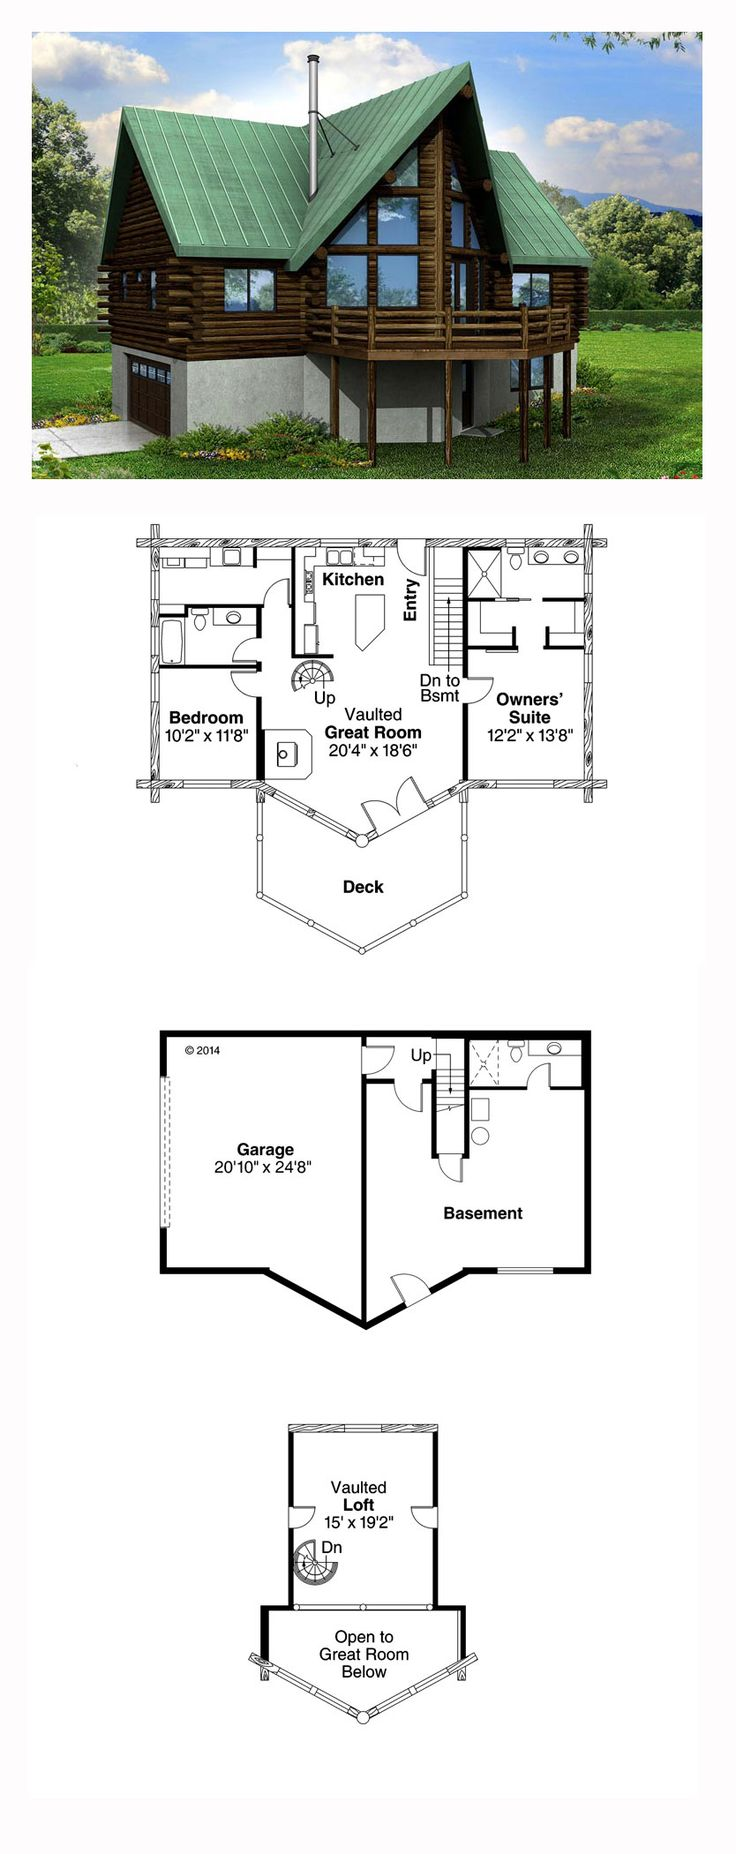 A-Frame House Plan 41165 | Total Living Area: 1568 sq. ft., 2 bedrooms and 2.5 bathrooms. #aframe